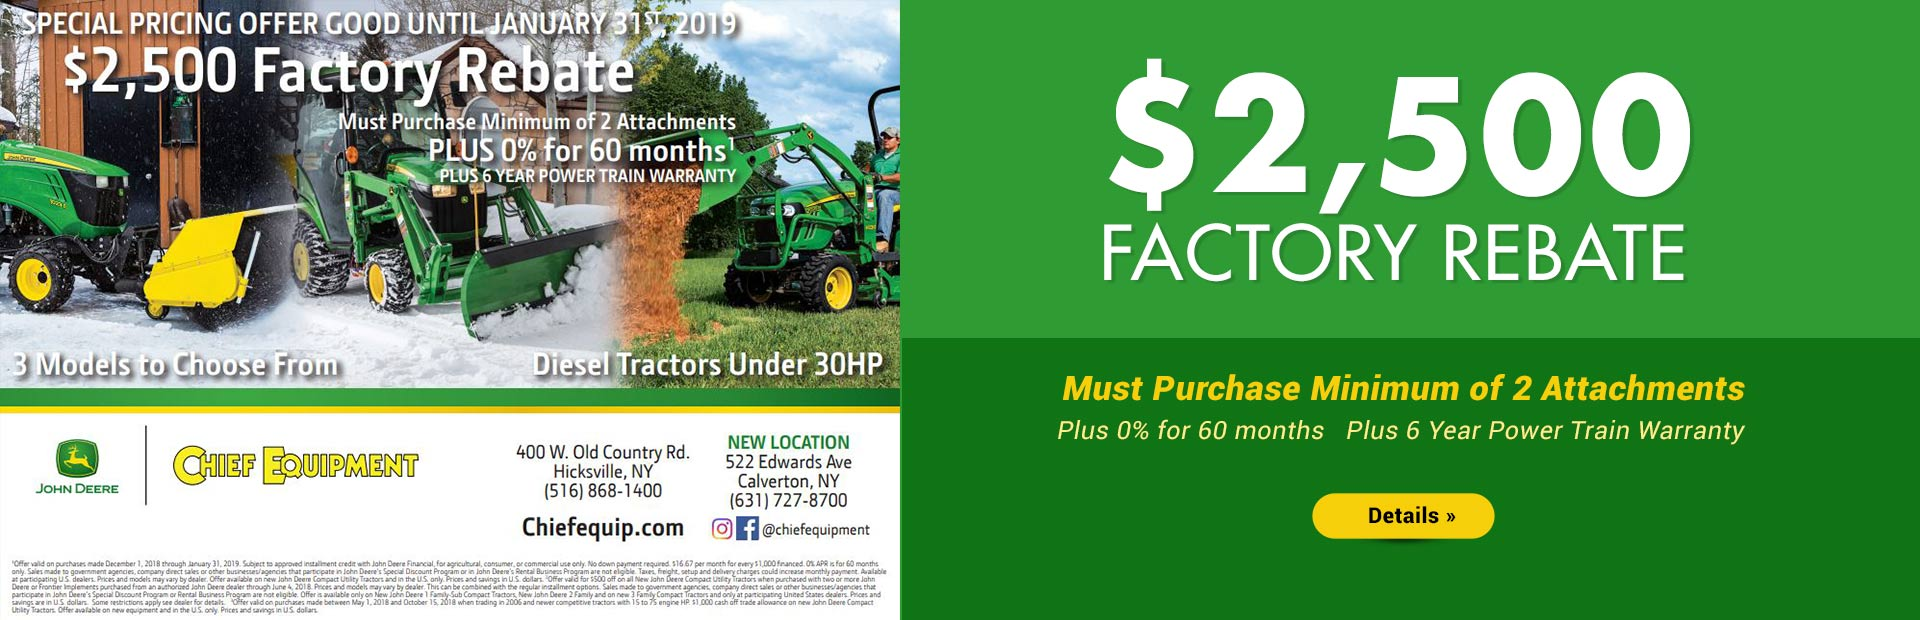 John Deere $2,500 factory rebate. Click here for details.